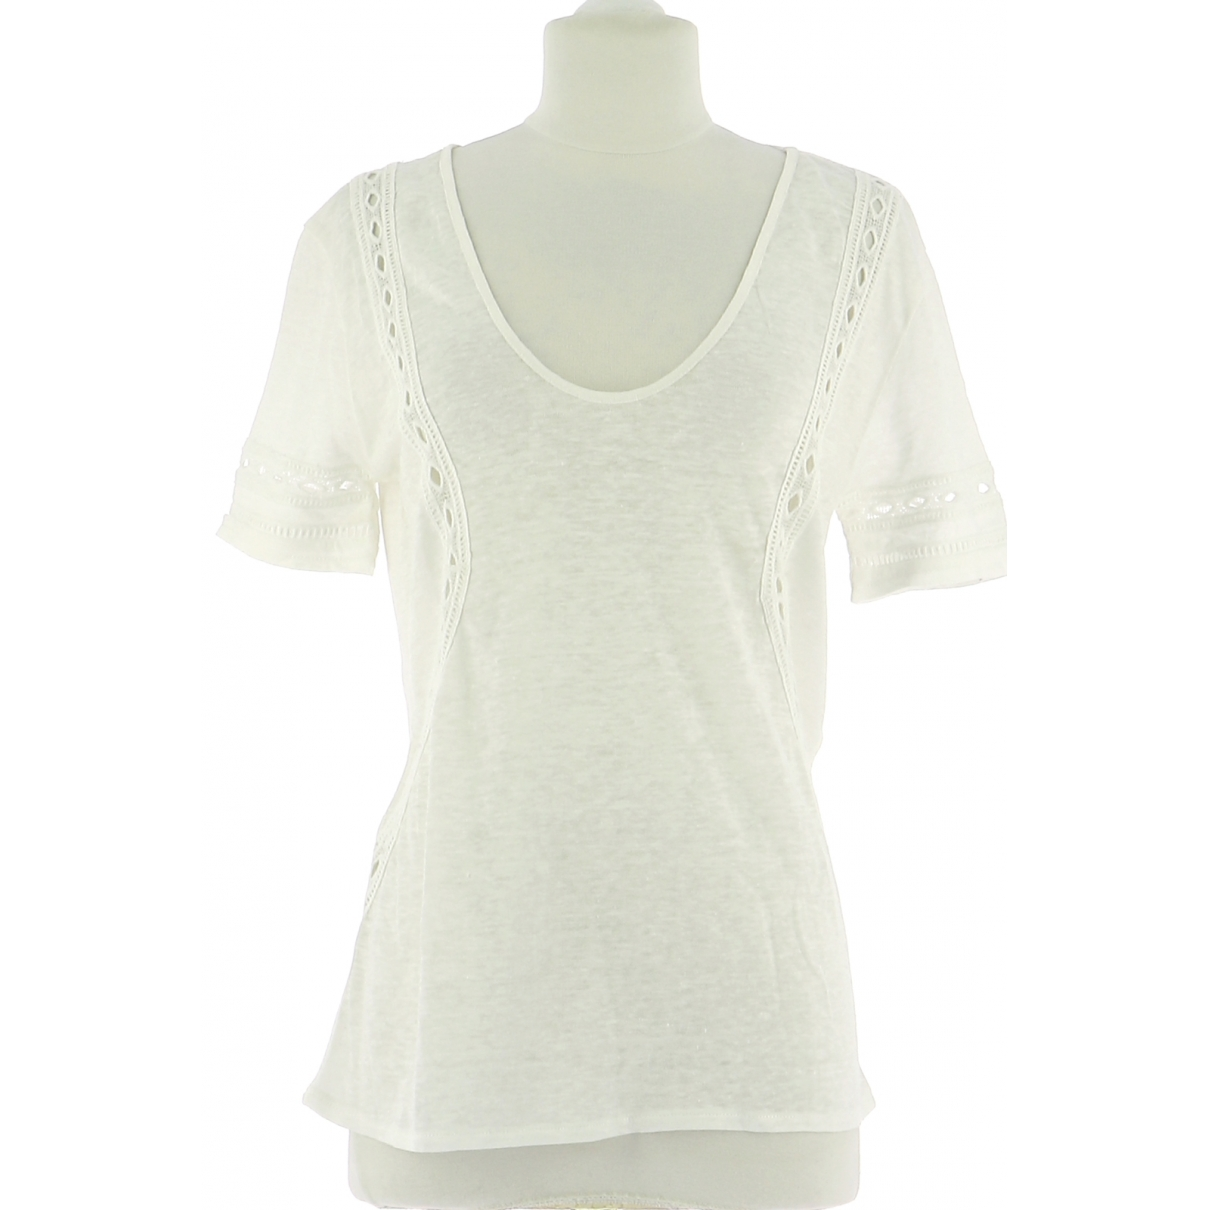 Ikks \N White Linen  top for Women 36 FR